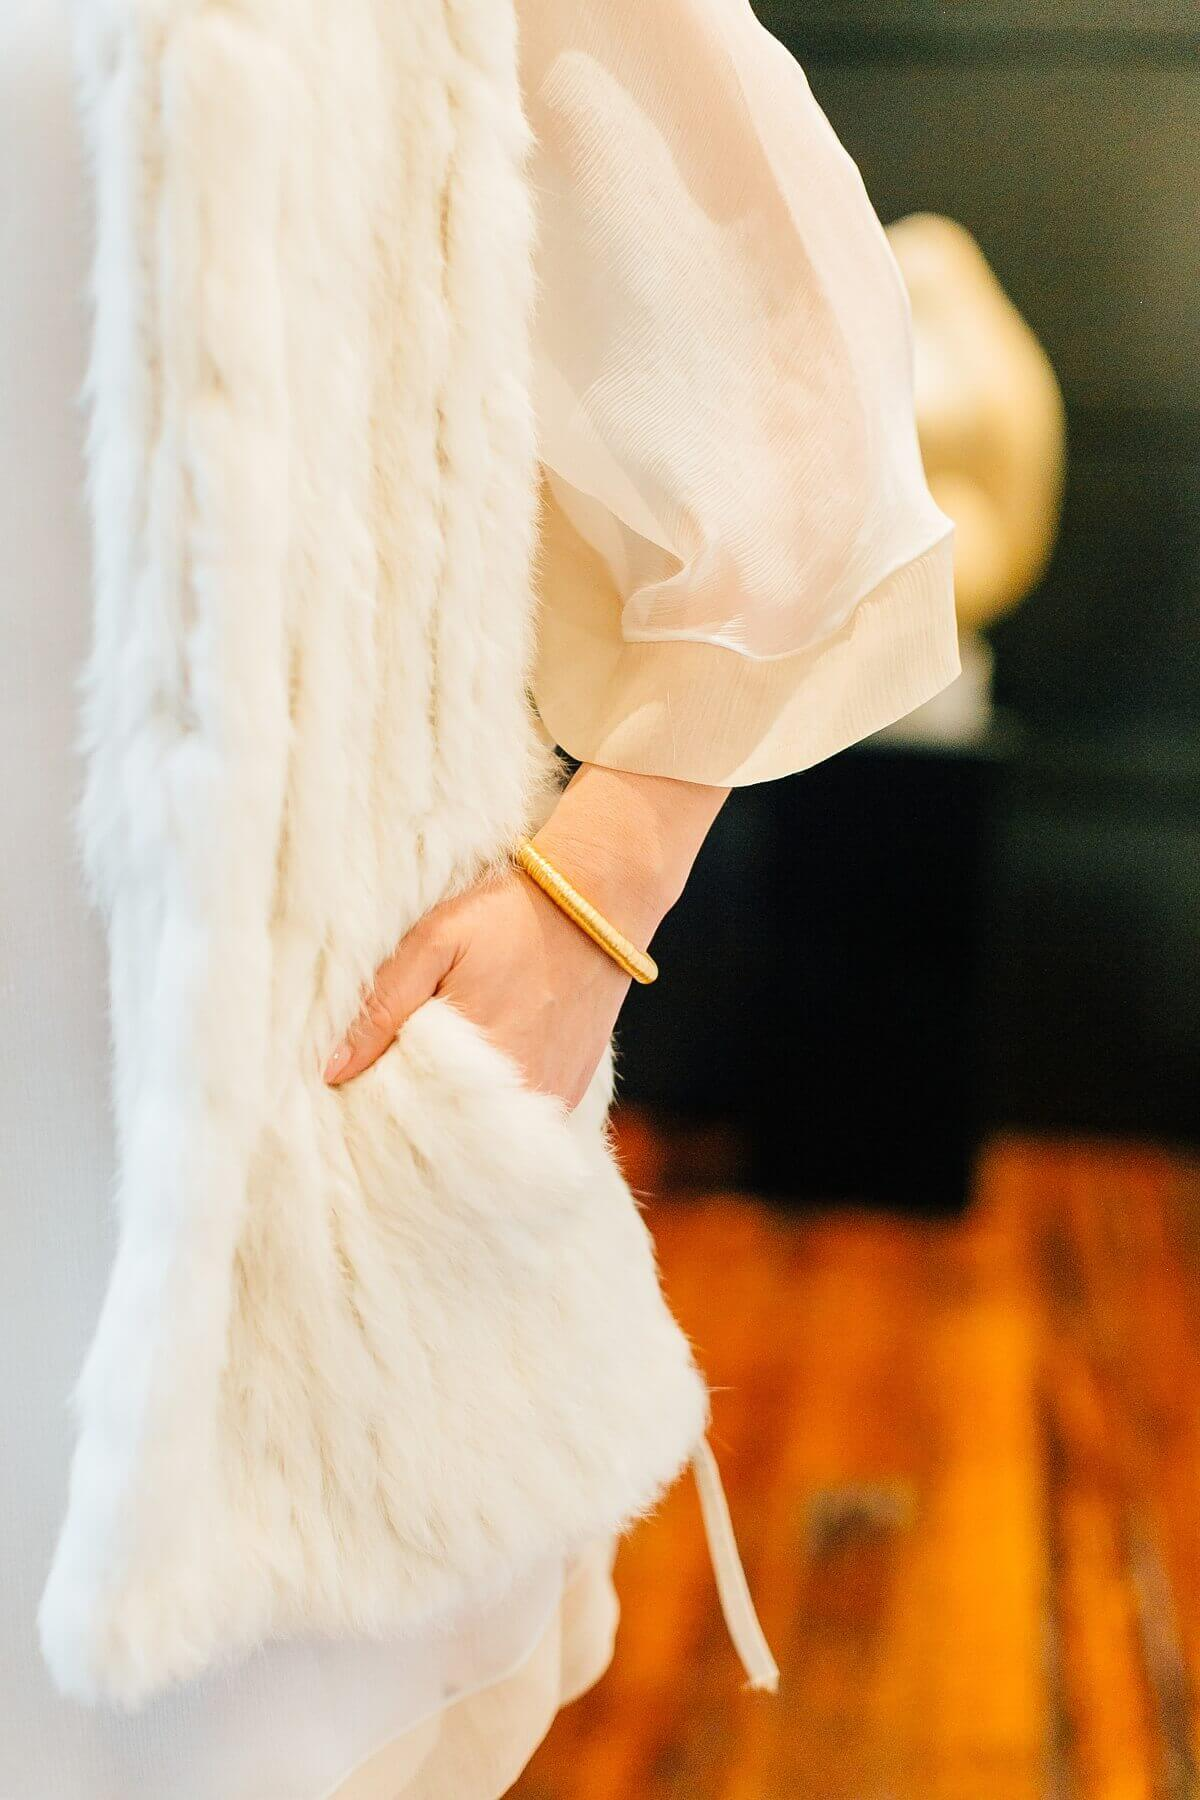 This pure gold bangle bracelet is a simple, stunning and sophisticated addition to any look.